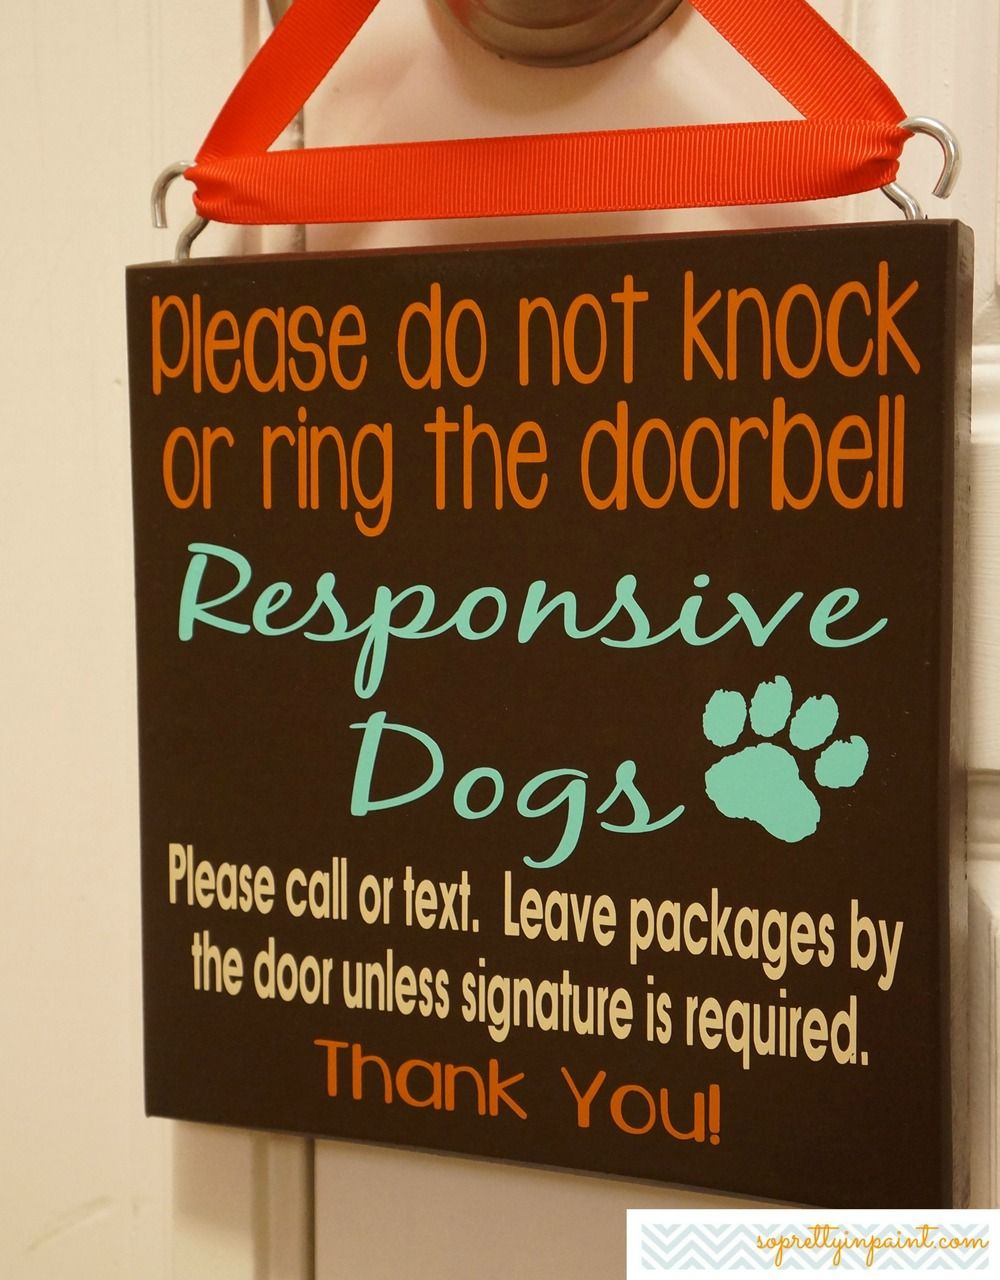 Please do not knock or ring the doorbell responsive dogs please please do not knock or ring the doorbell responsive dogs please call or text eventshaper